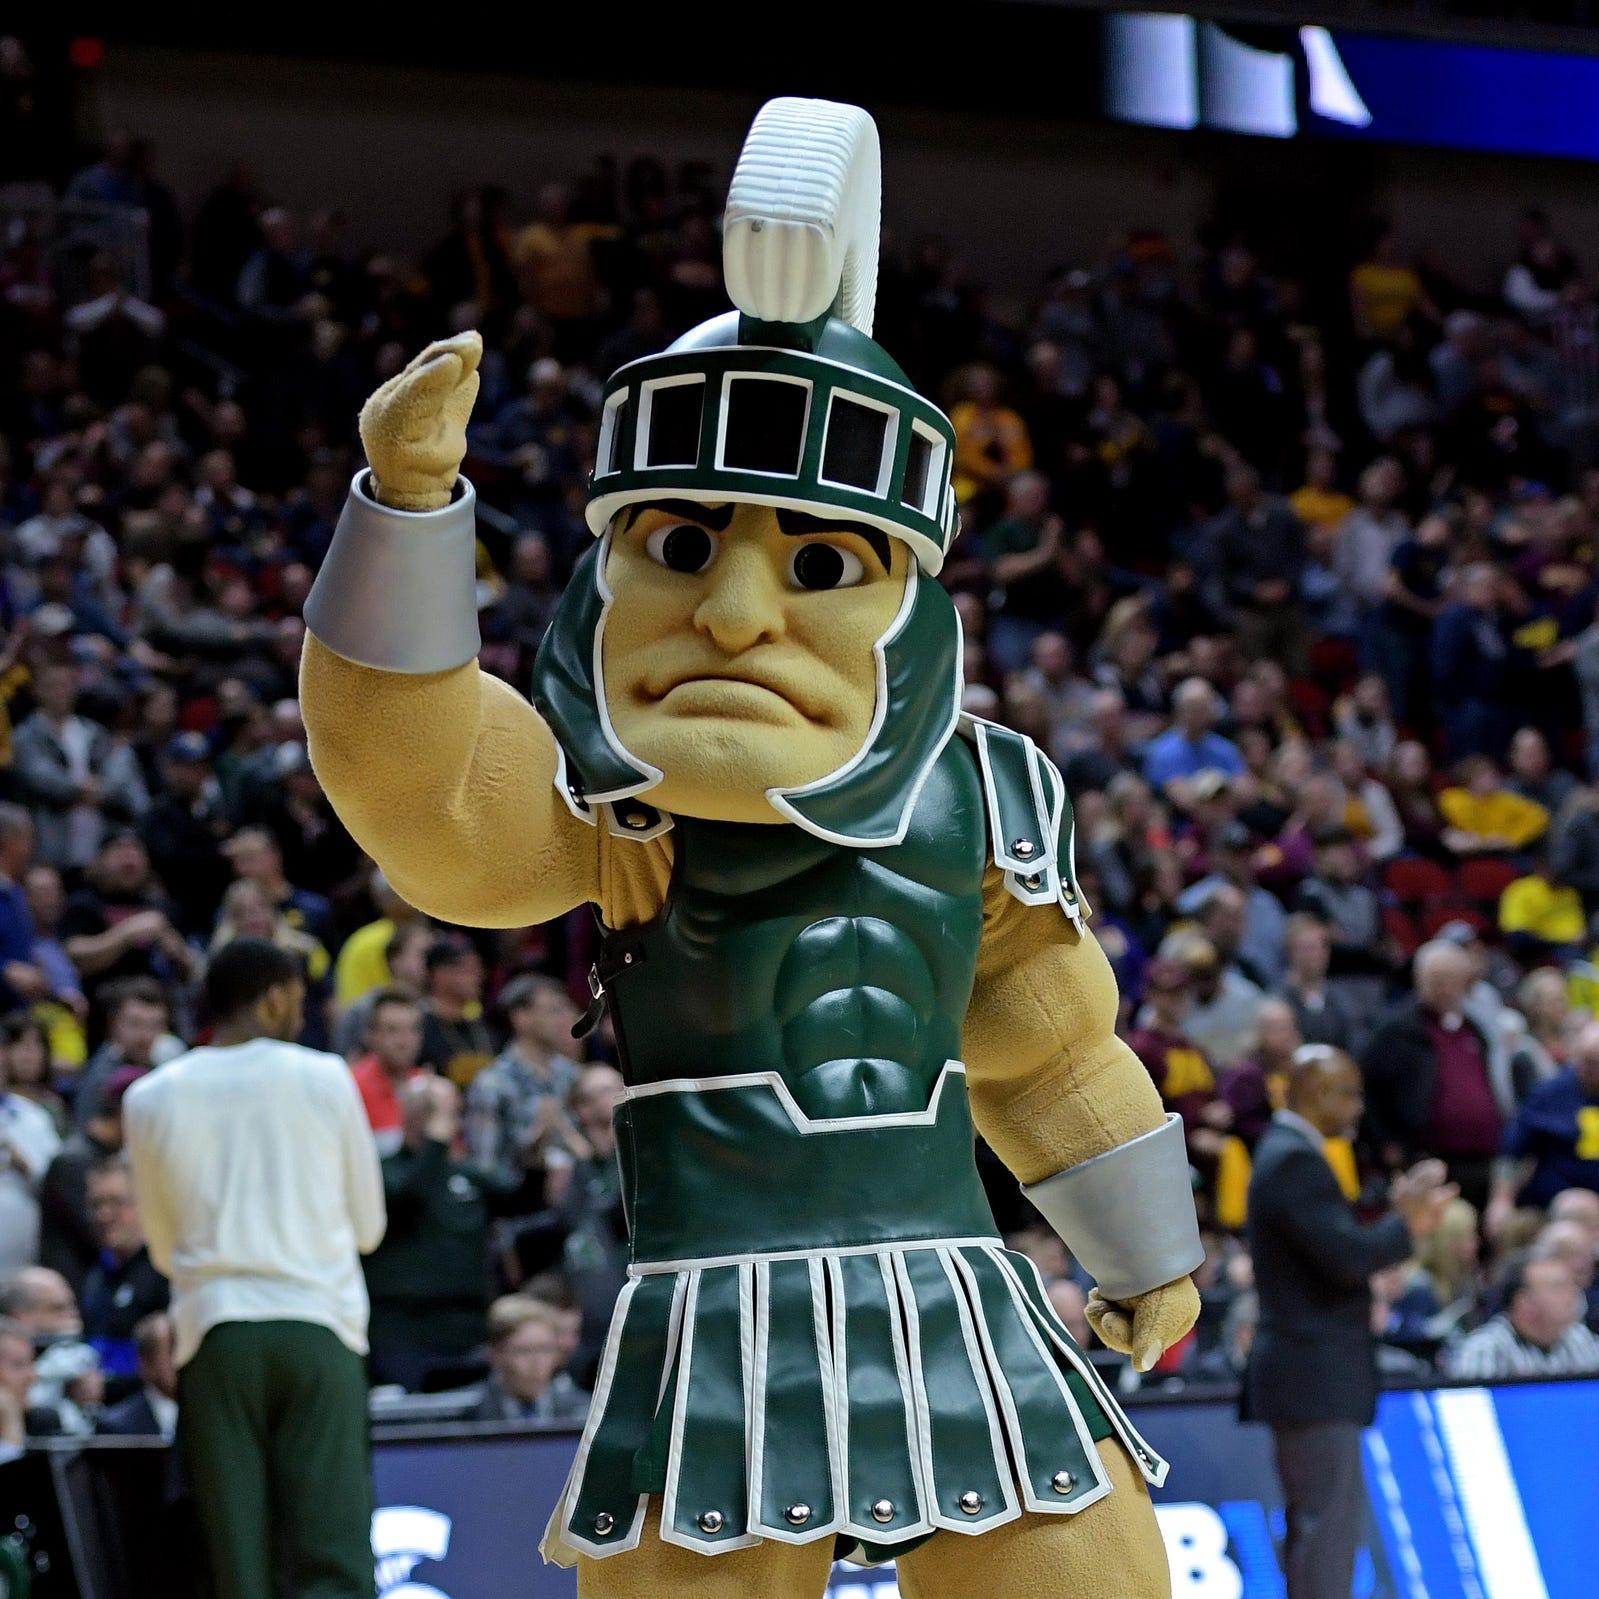 Fun Facts about Michigan State's Sparty — America's No. 1 college mascot